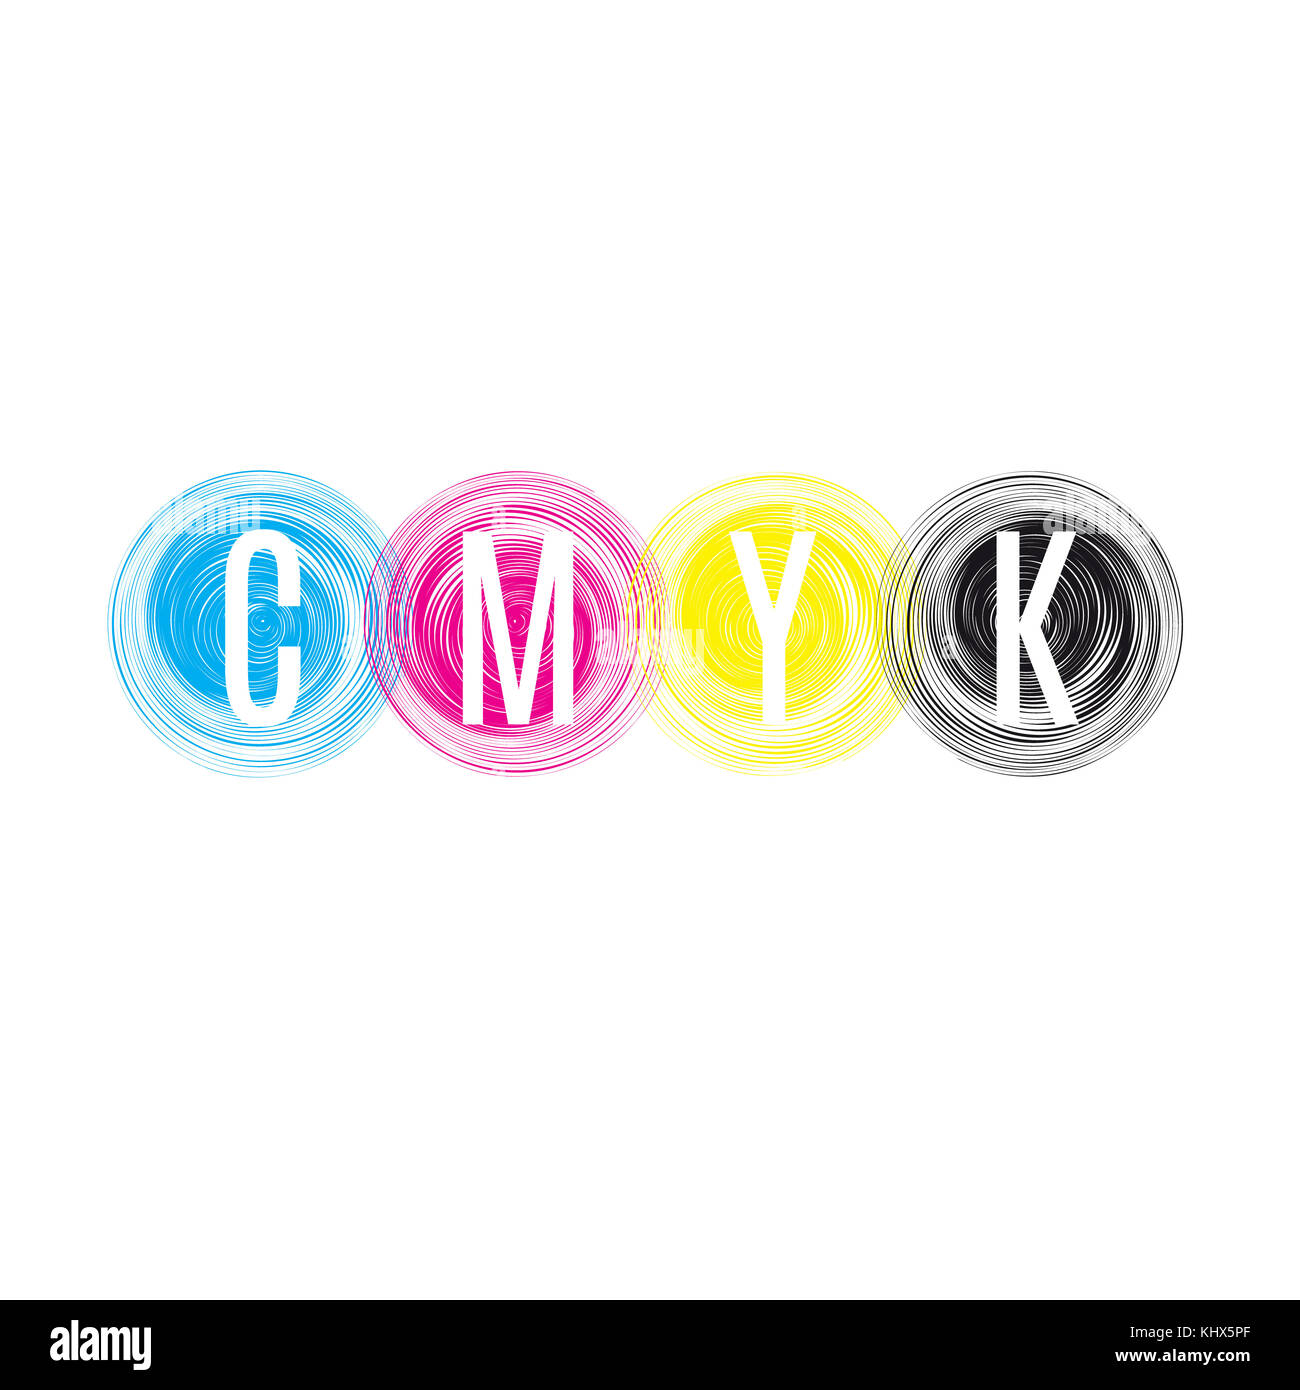 CMYK print abstract circles. Vector illustration. - Stock Image